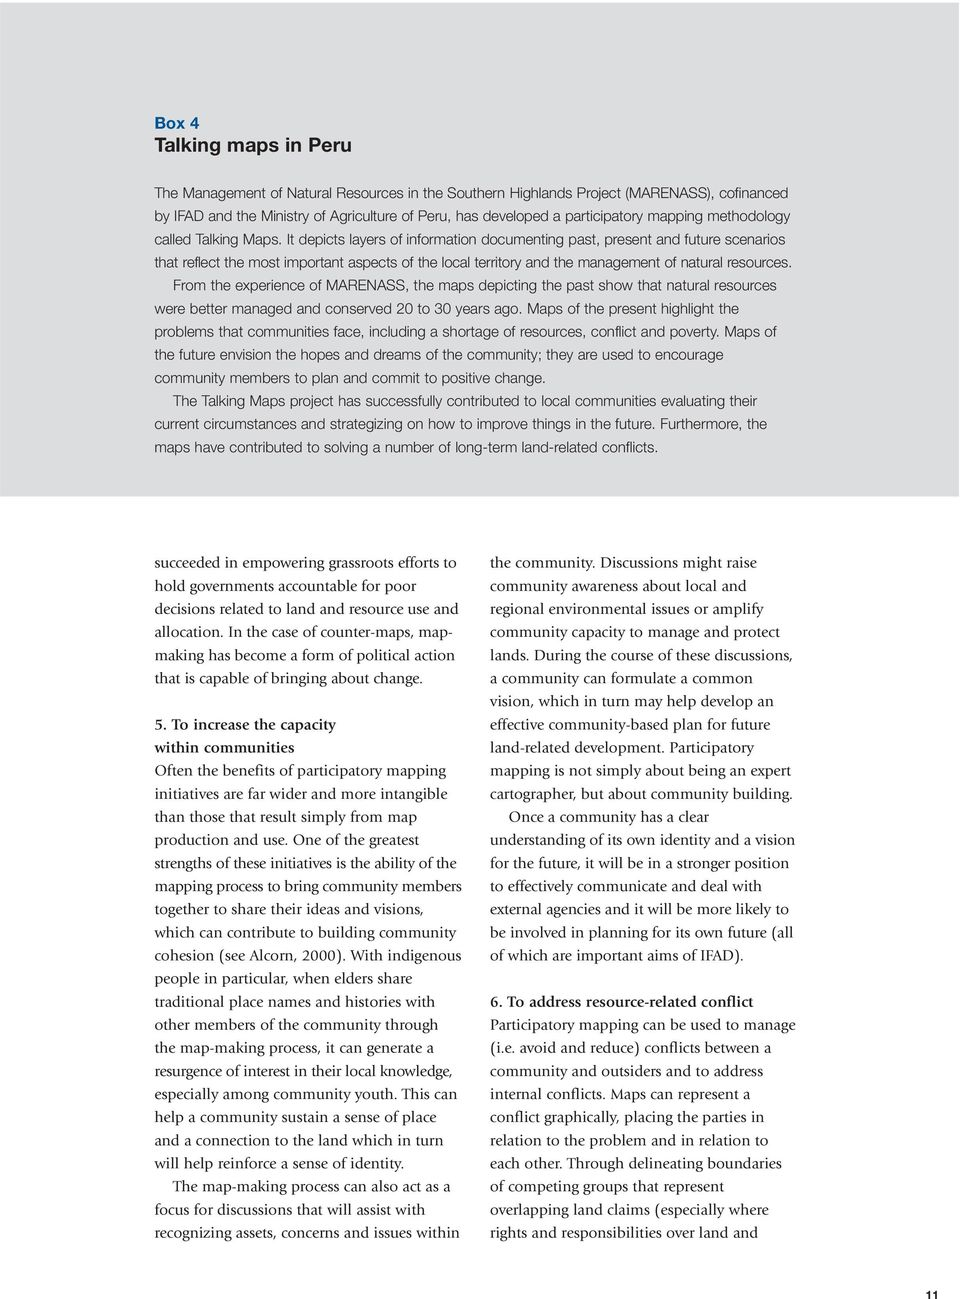 It depicts layers of information documenting past, present and future scenarios that reflect the most important aspects of the local territory and the management of natural resources.